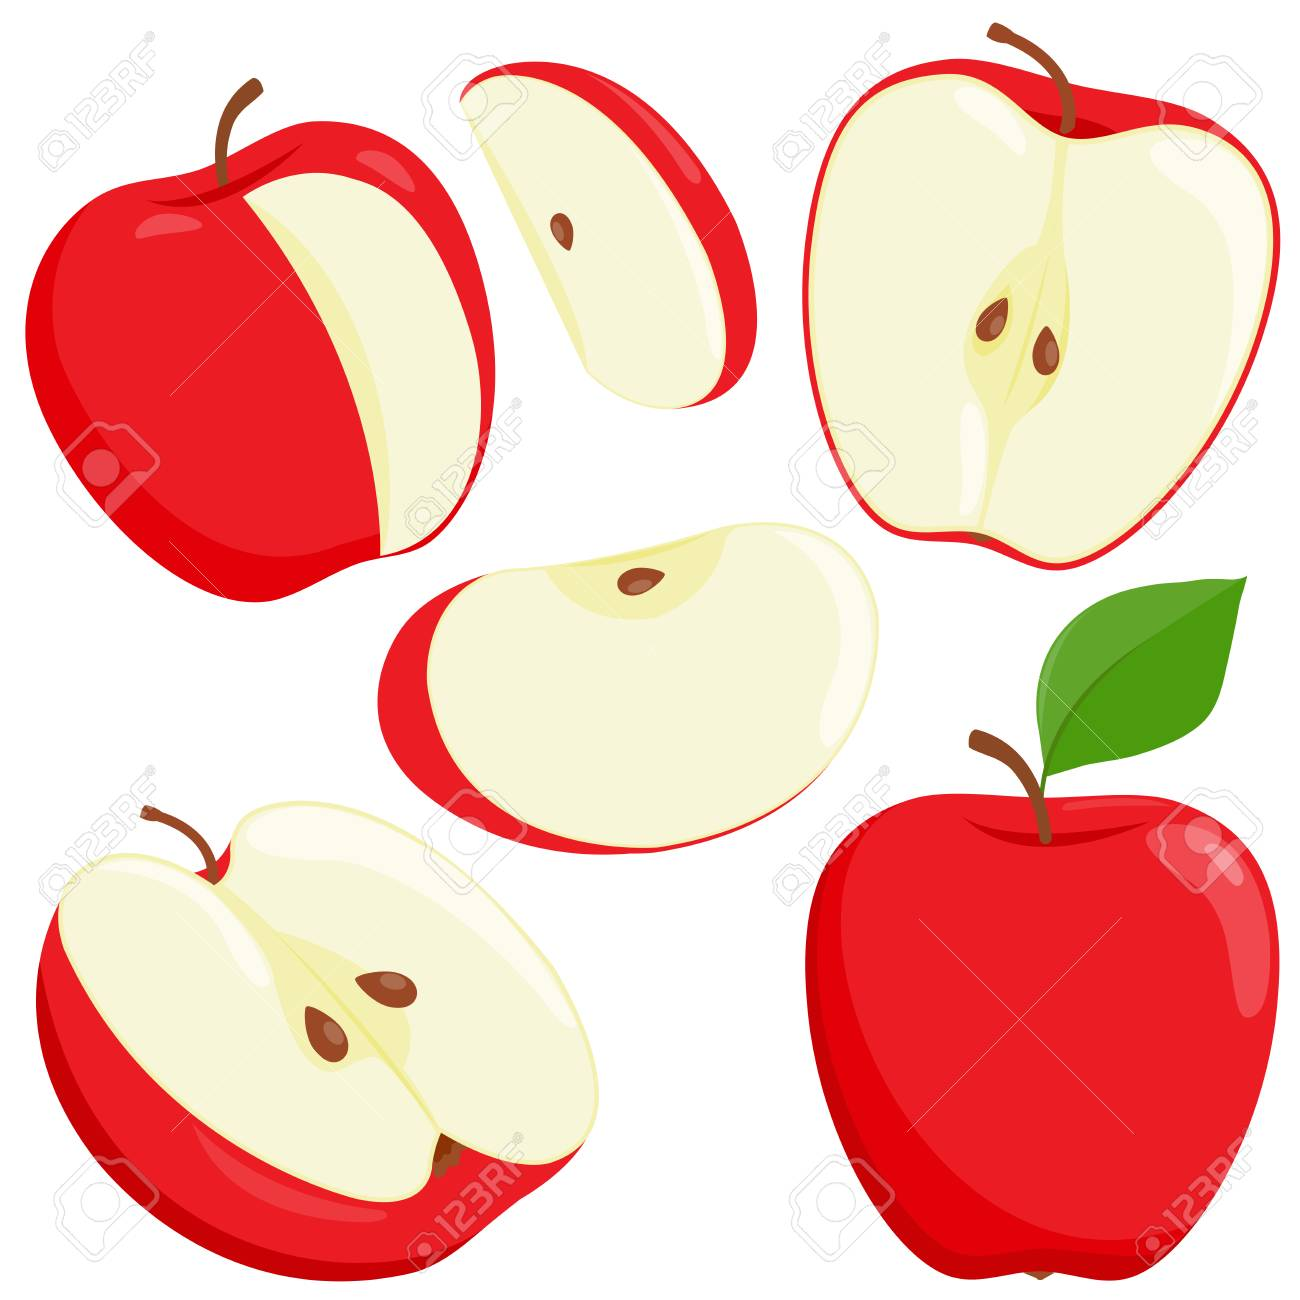 Red, whole and sliced apples. Vector illustration.